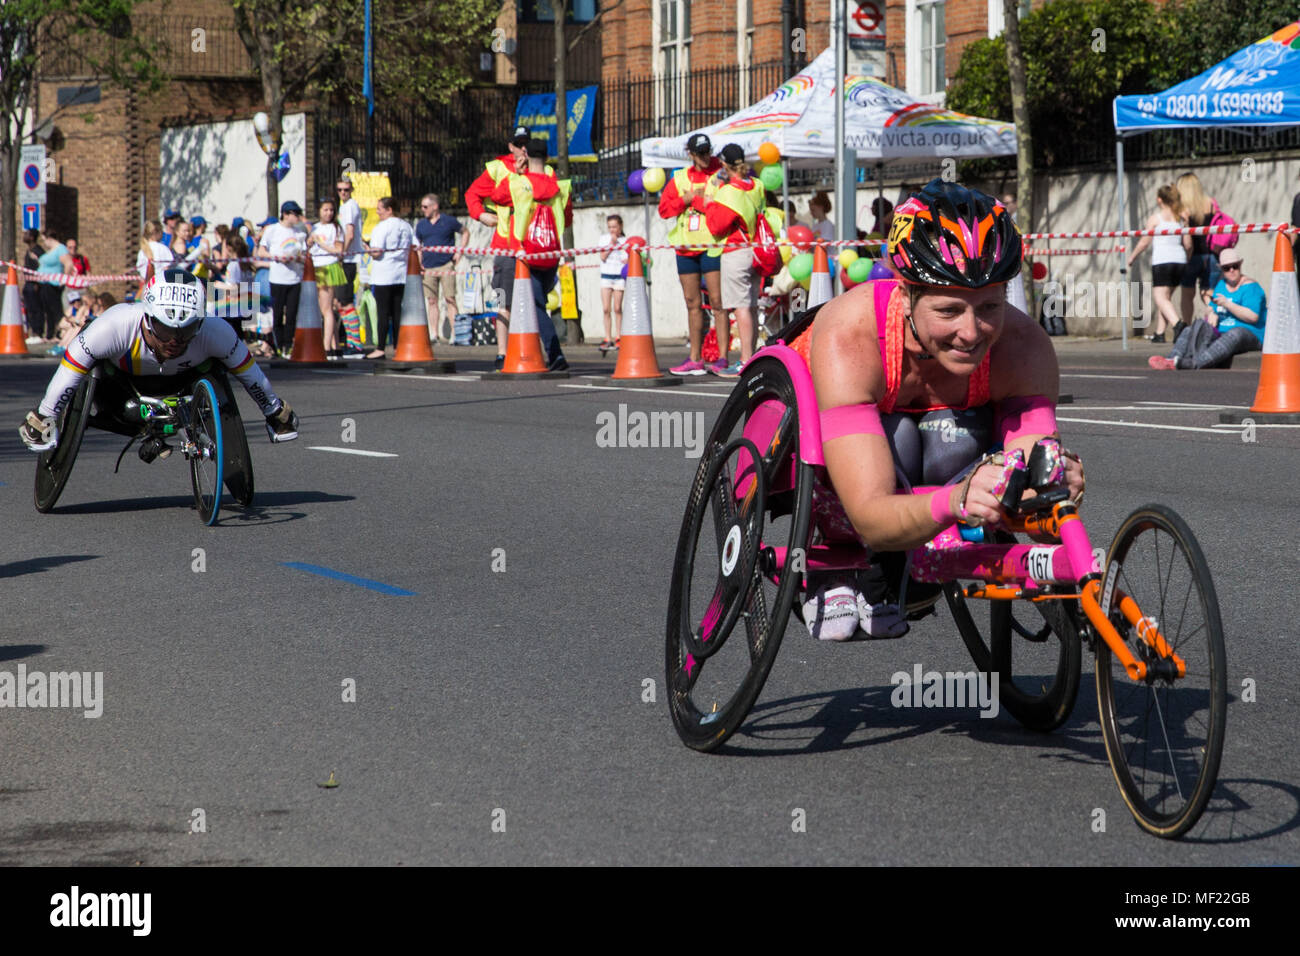 London, UK. 22nd April, 2018. Mel Nicholls of Great Britain competes in the T53/T54 wheelchair event at the 2018 Virgin Money London Marathon. The 38th edition of the race was the hottest on record with a temperature of 24.1C recorded in St James's Park. - Stock Image